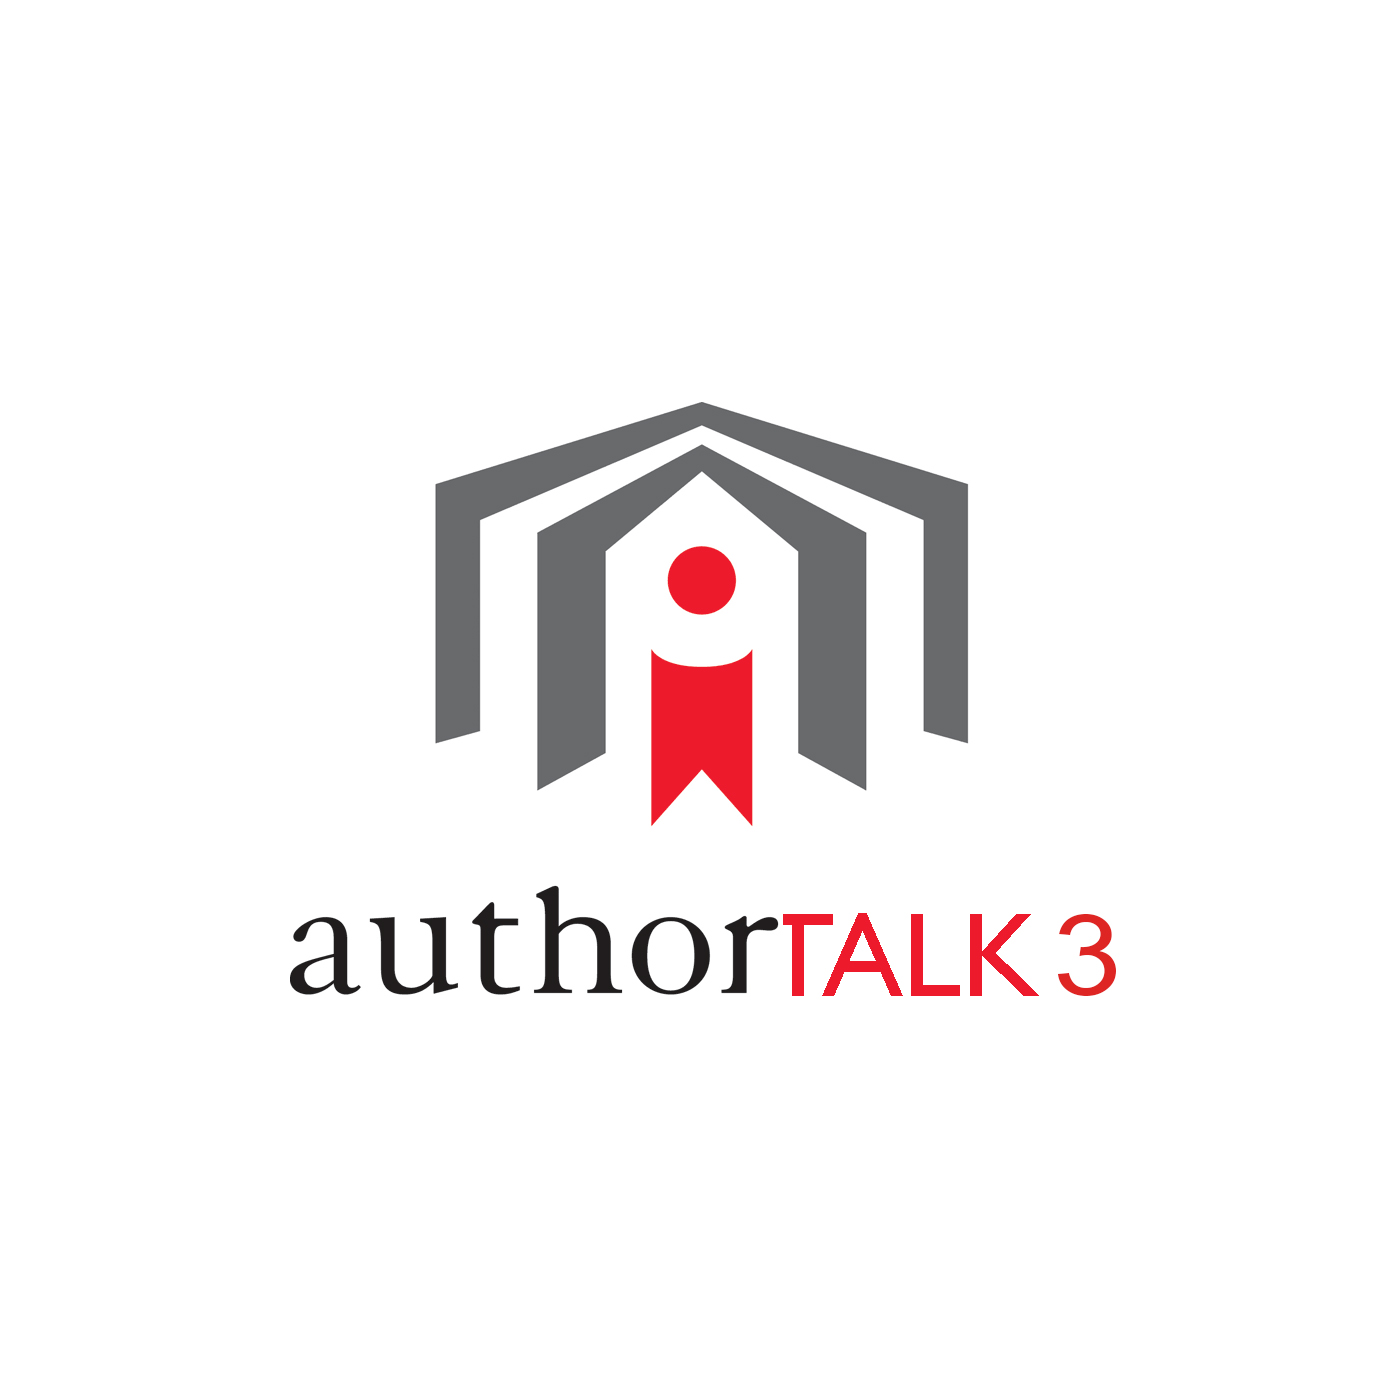 AuthorTalk 3